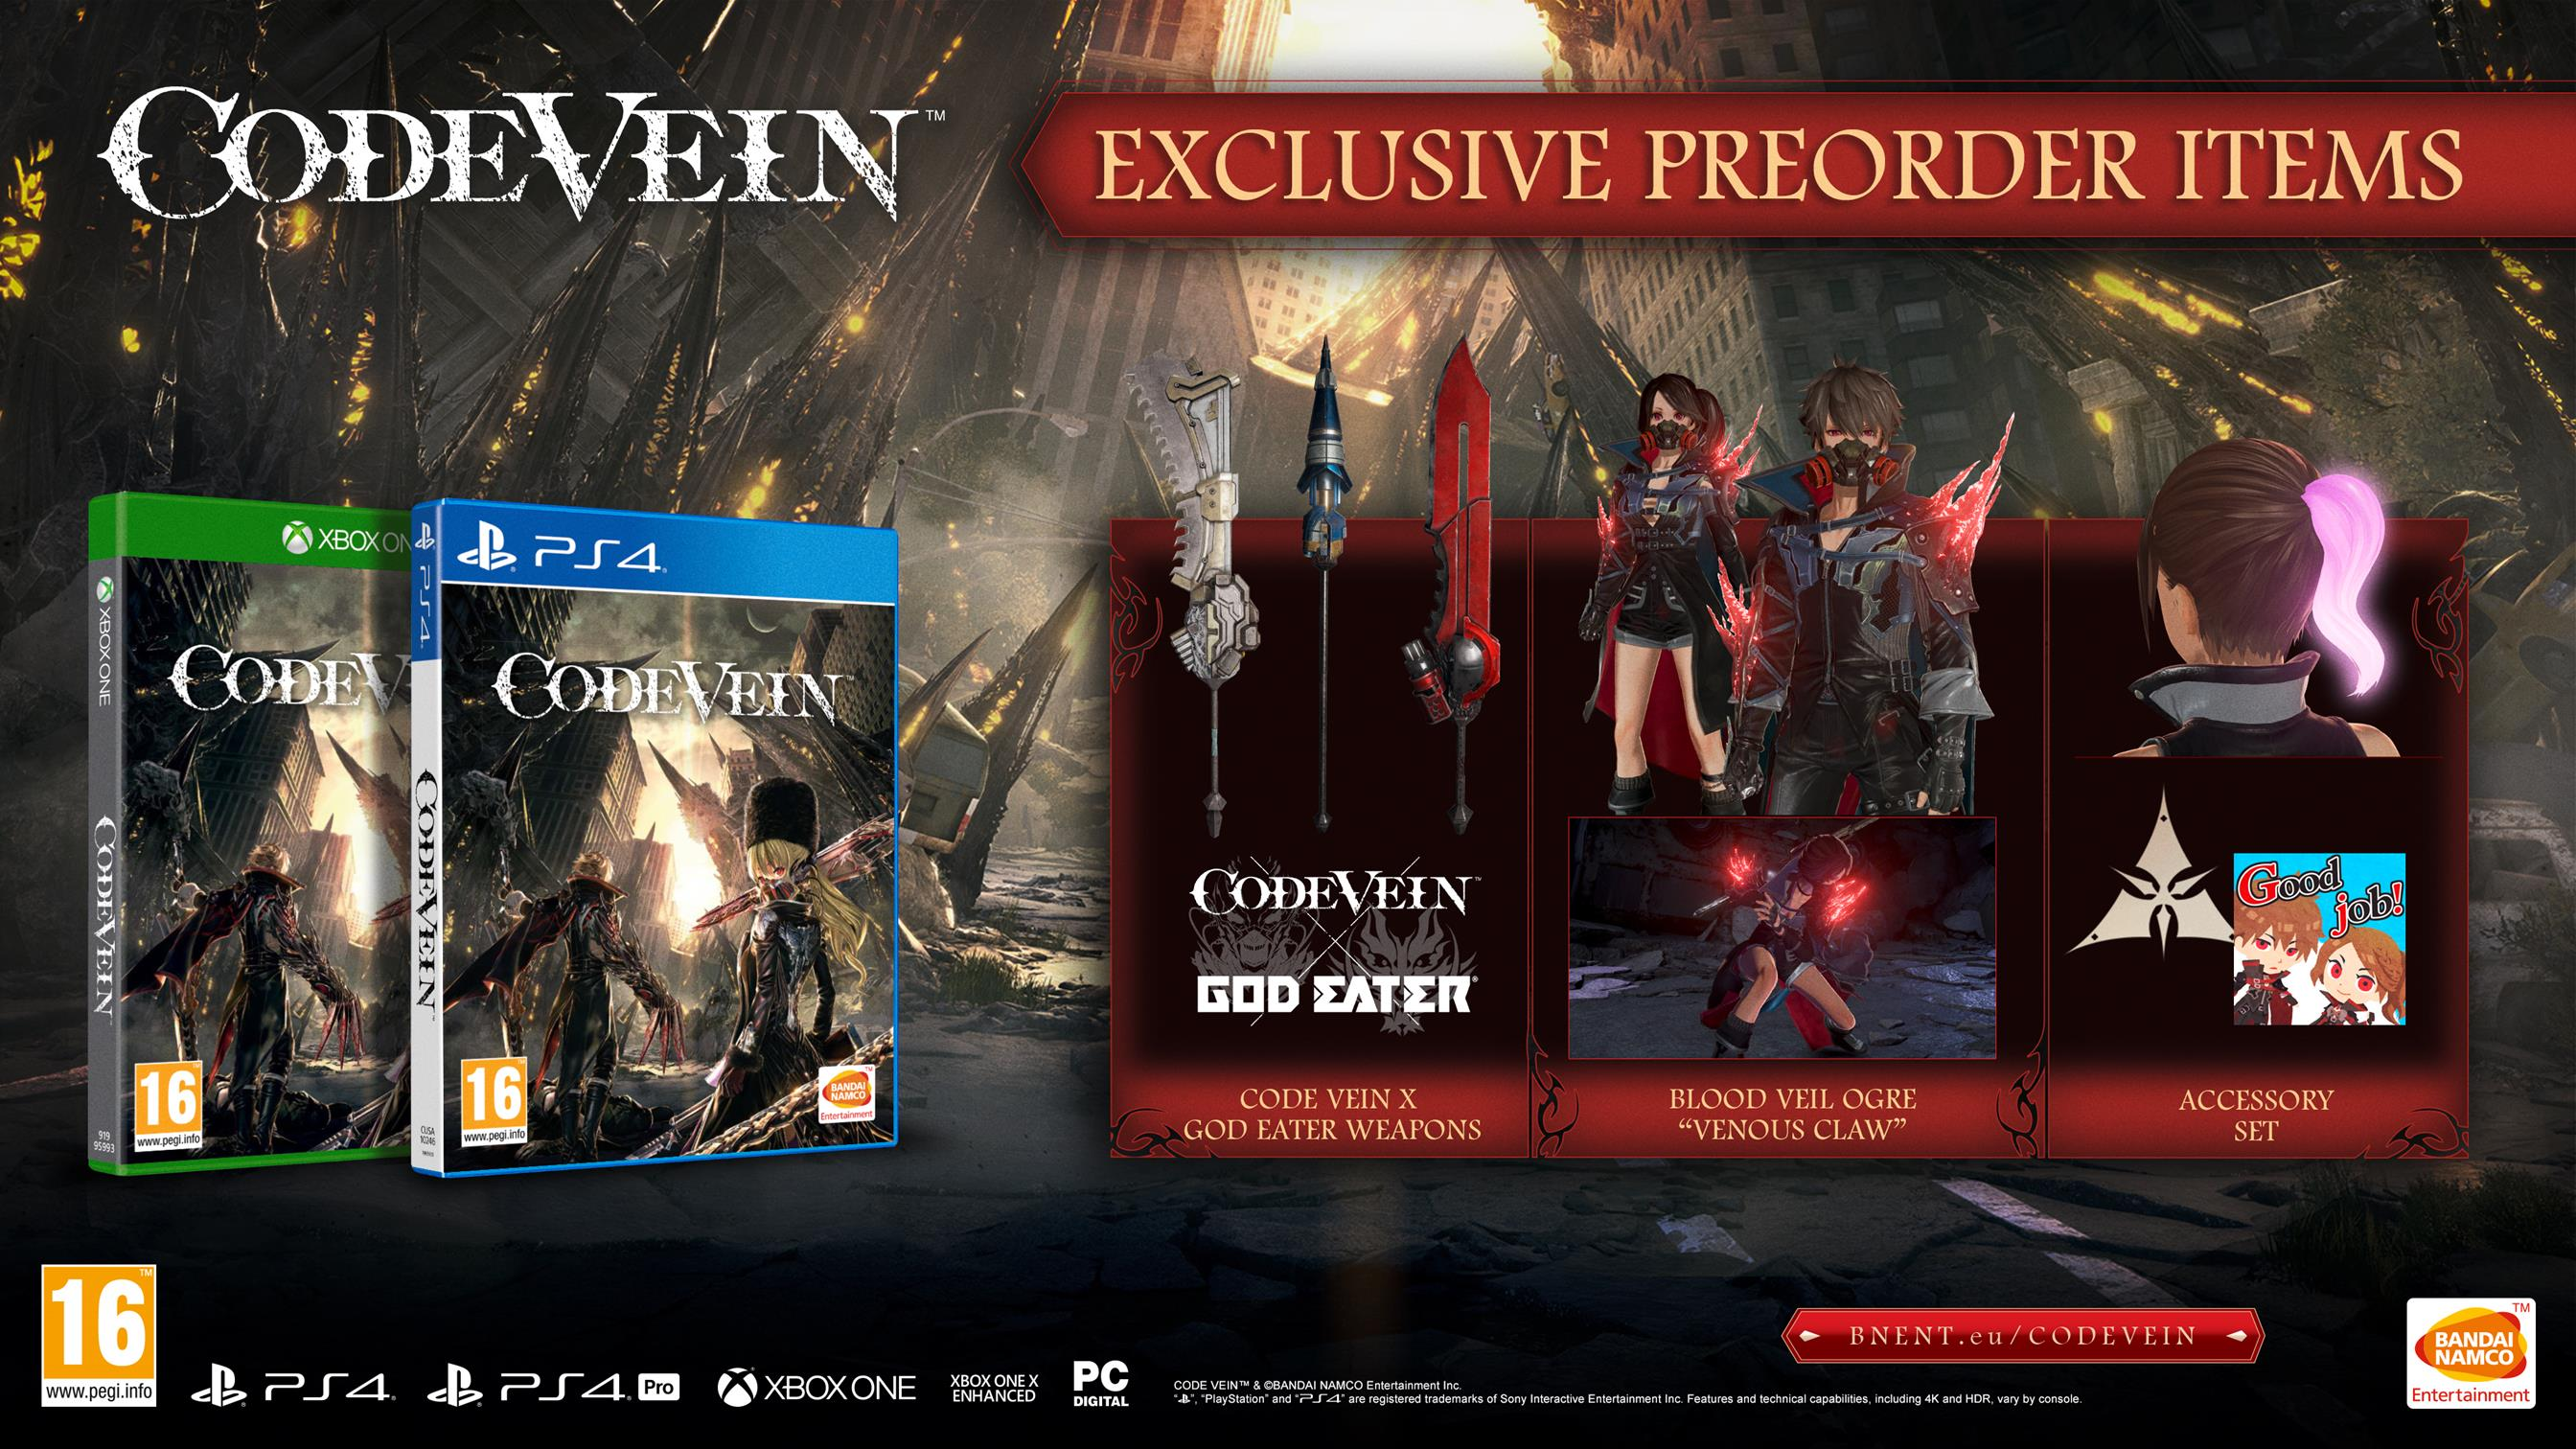 The Human Race Is No More In The New Code Vein Trailer